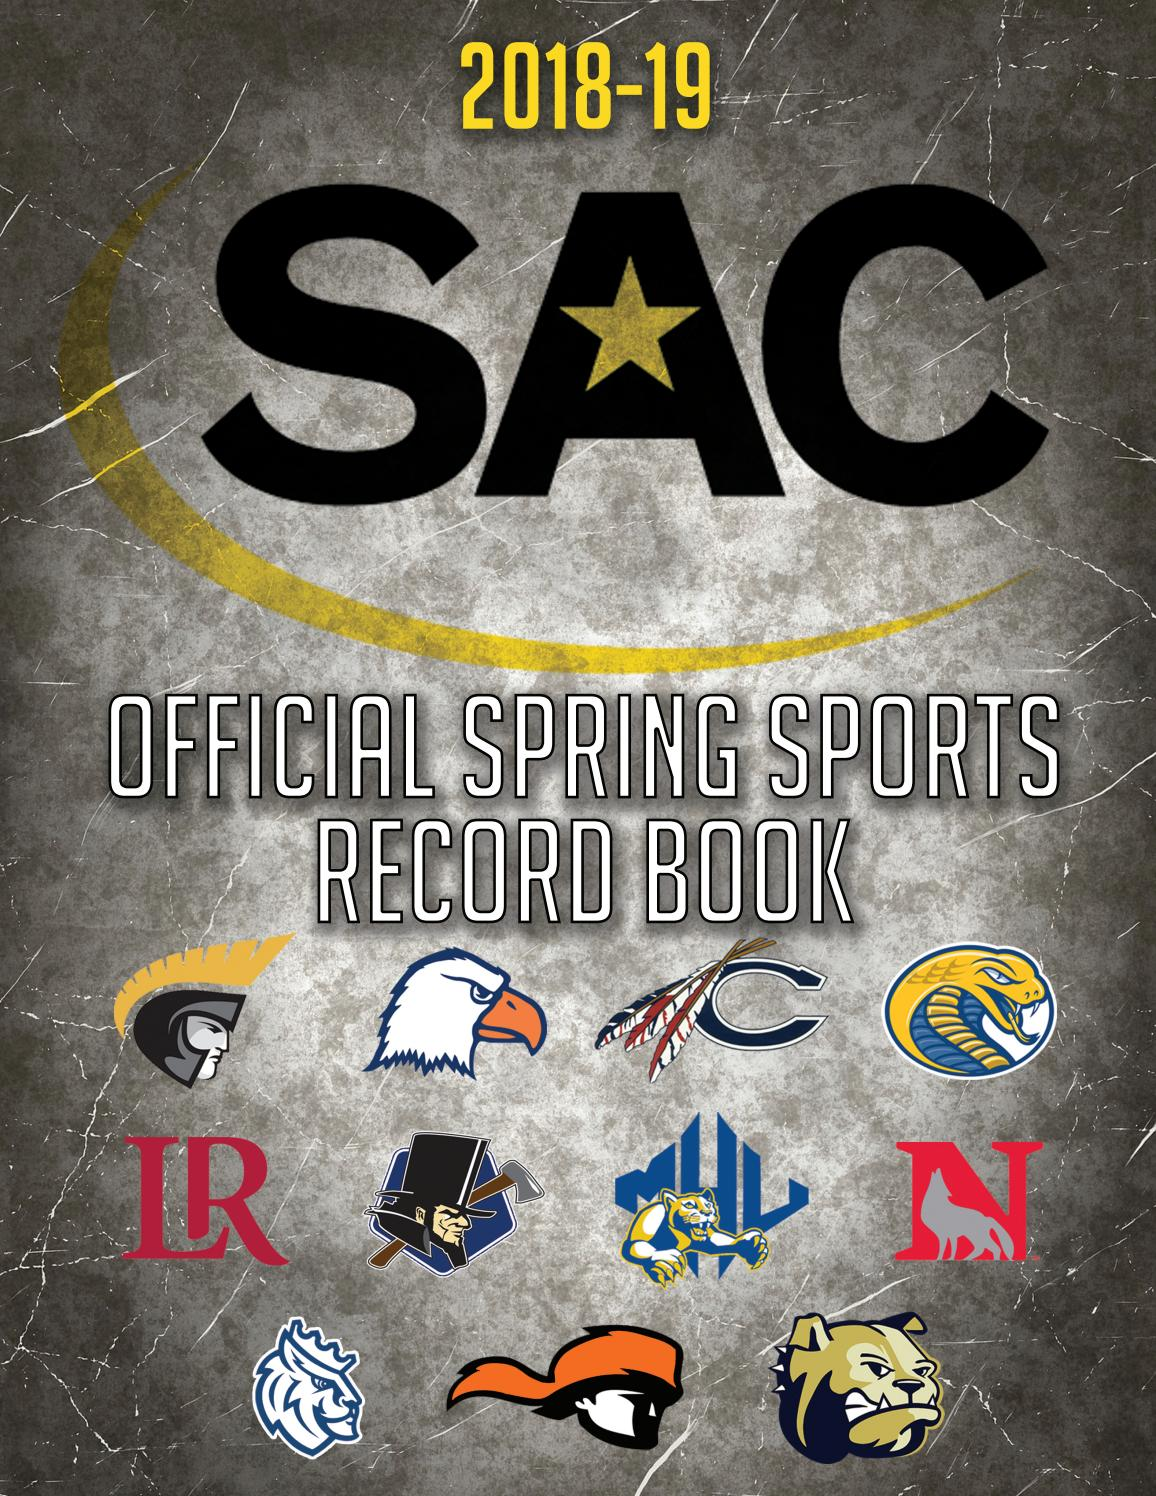 2018-19 SAC Spring Sports Record Book by The SAC - issuu